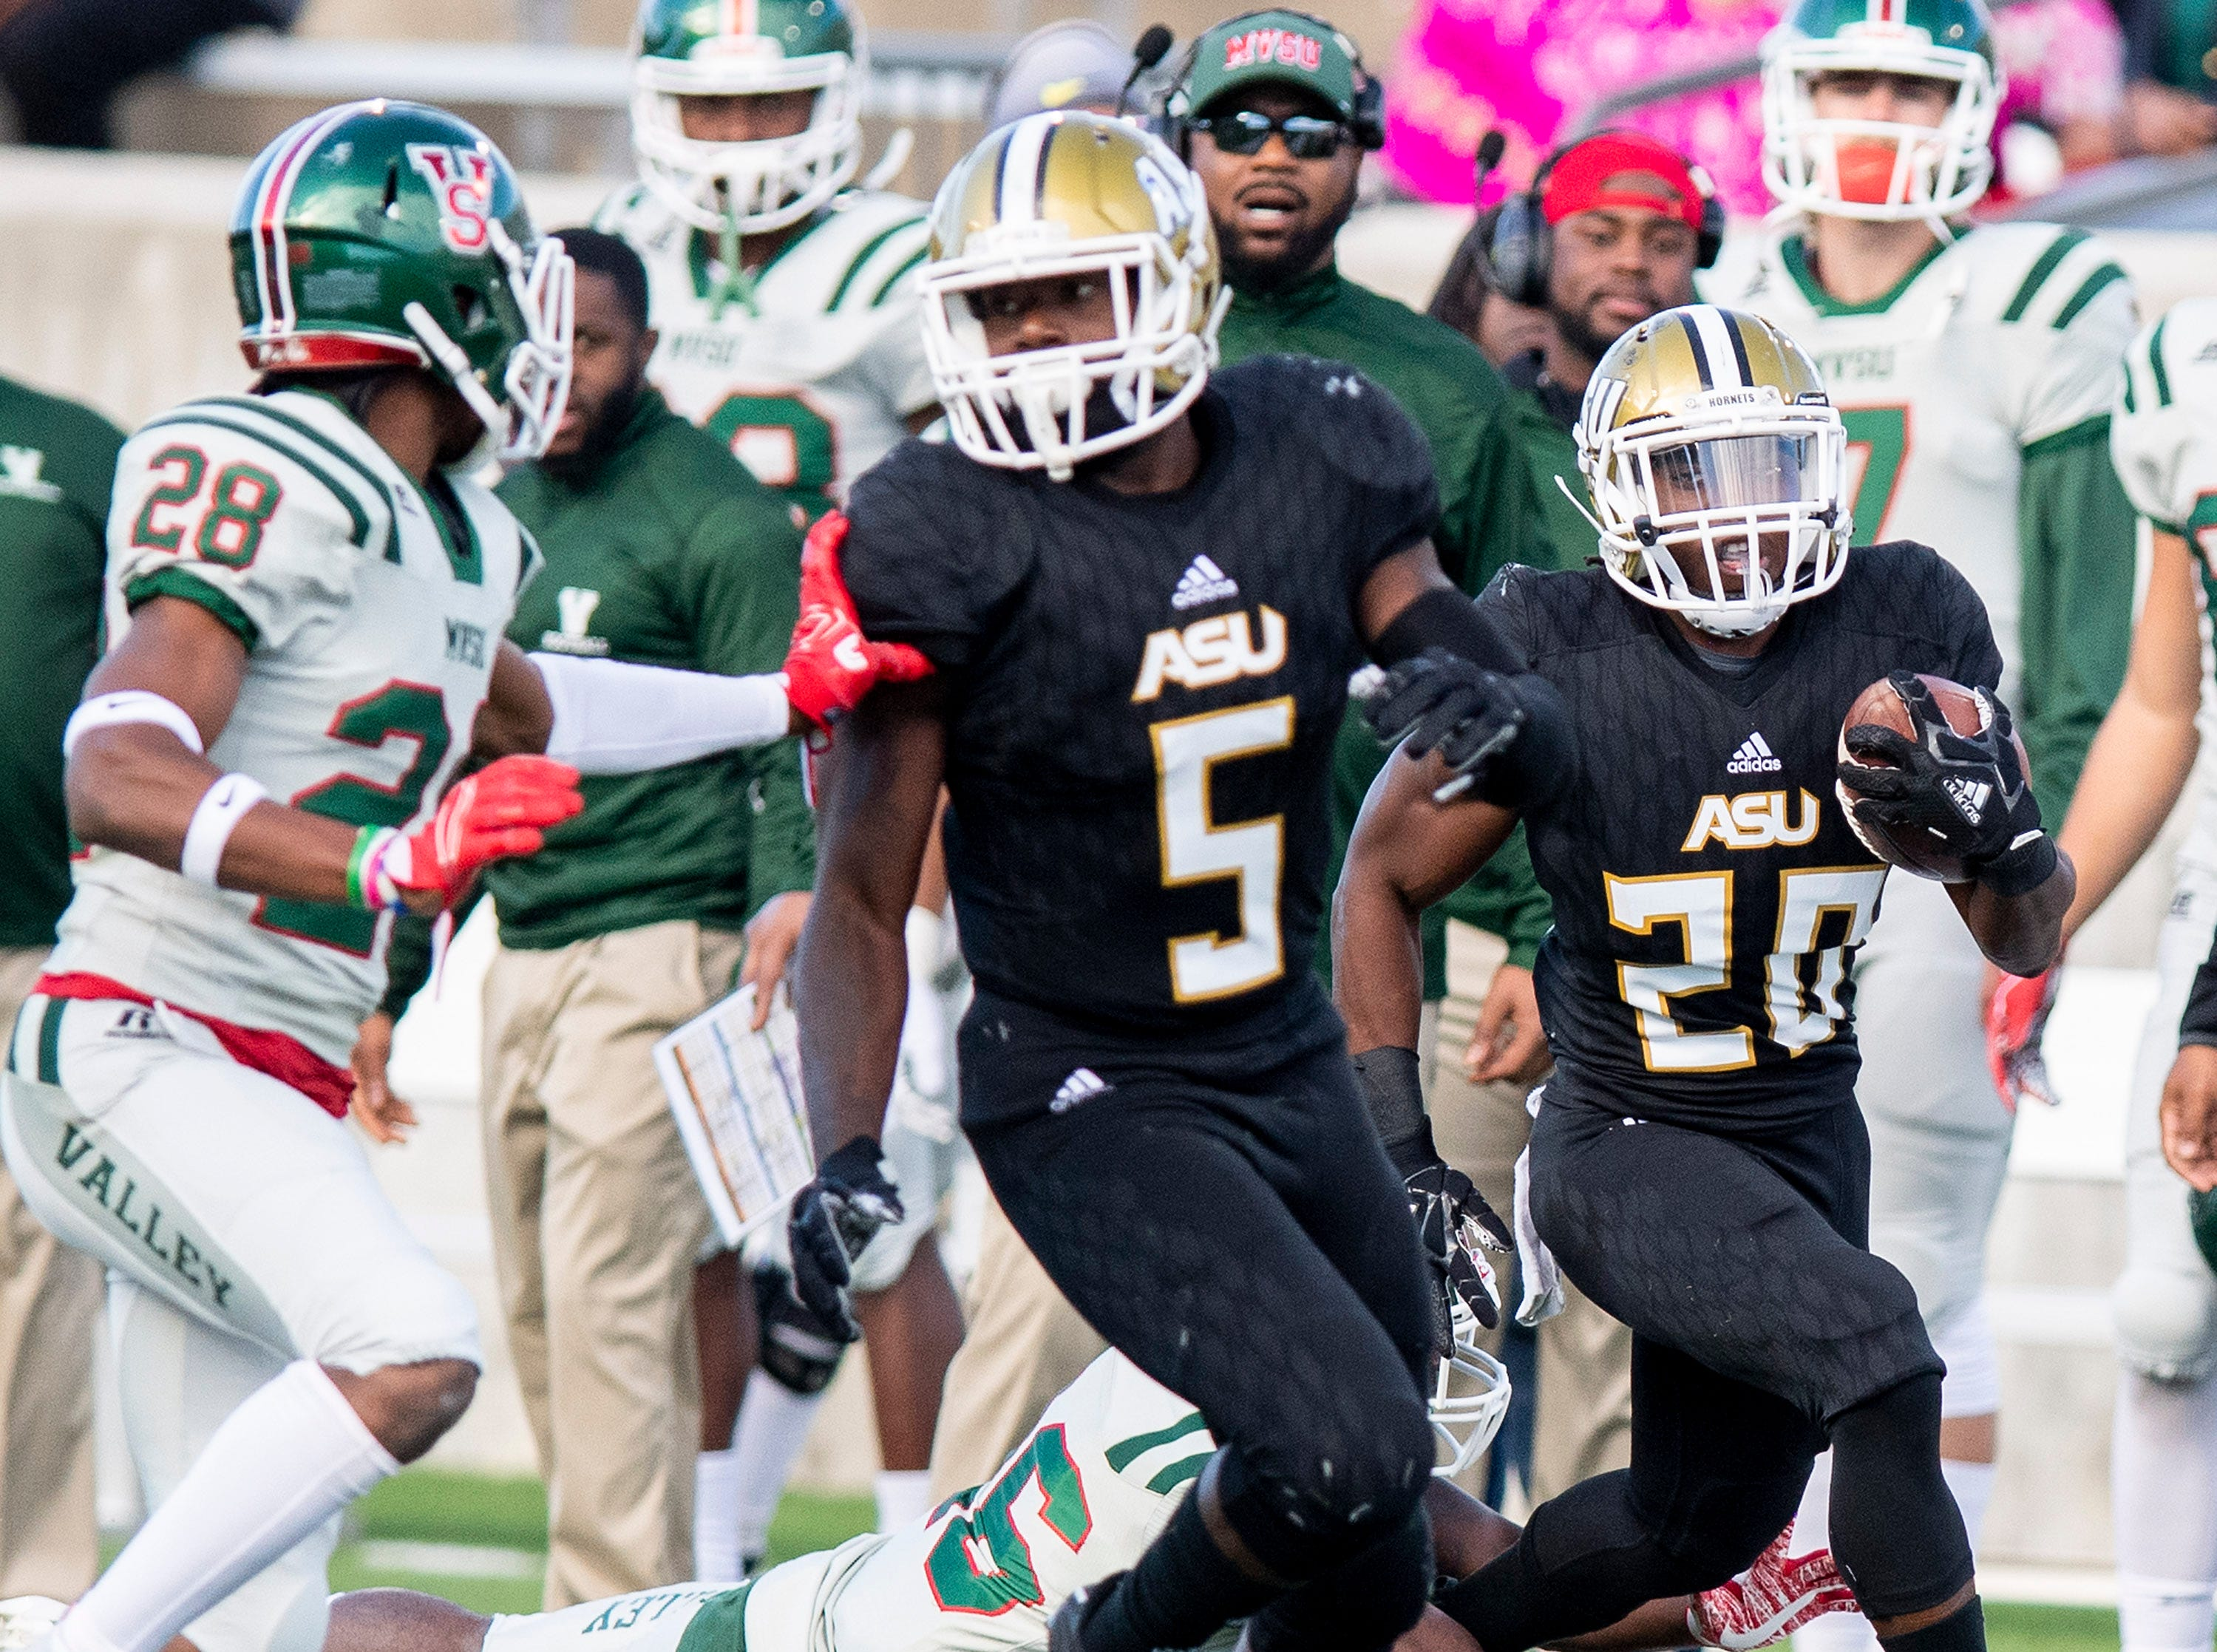 Alabama State University running back Ezra Gray (20) returns a kick behind the blocking of running back Alex Anderson (5) against Mississippi Valley State in first half action of the Turkey Day Classic at Hornet Stadium on the ASU campus in Montgomery, Ala., on Thanksgiving Day, Thursday November 22, 2018.